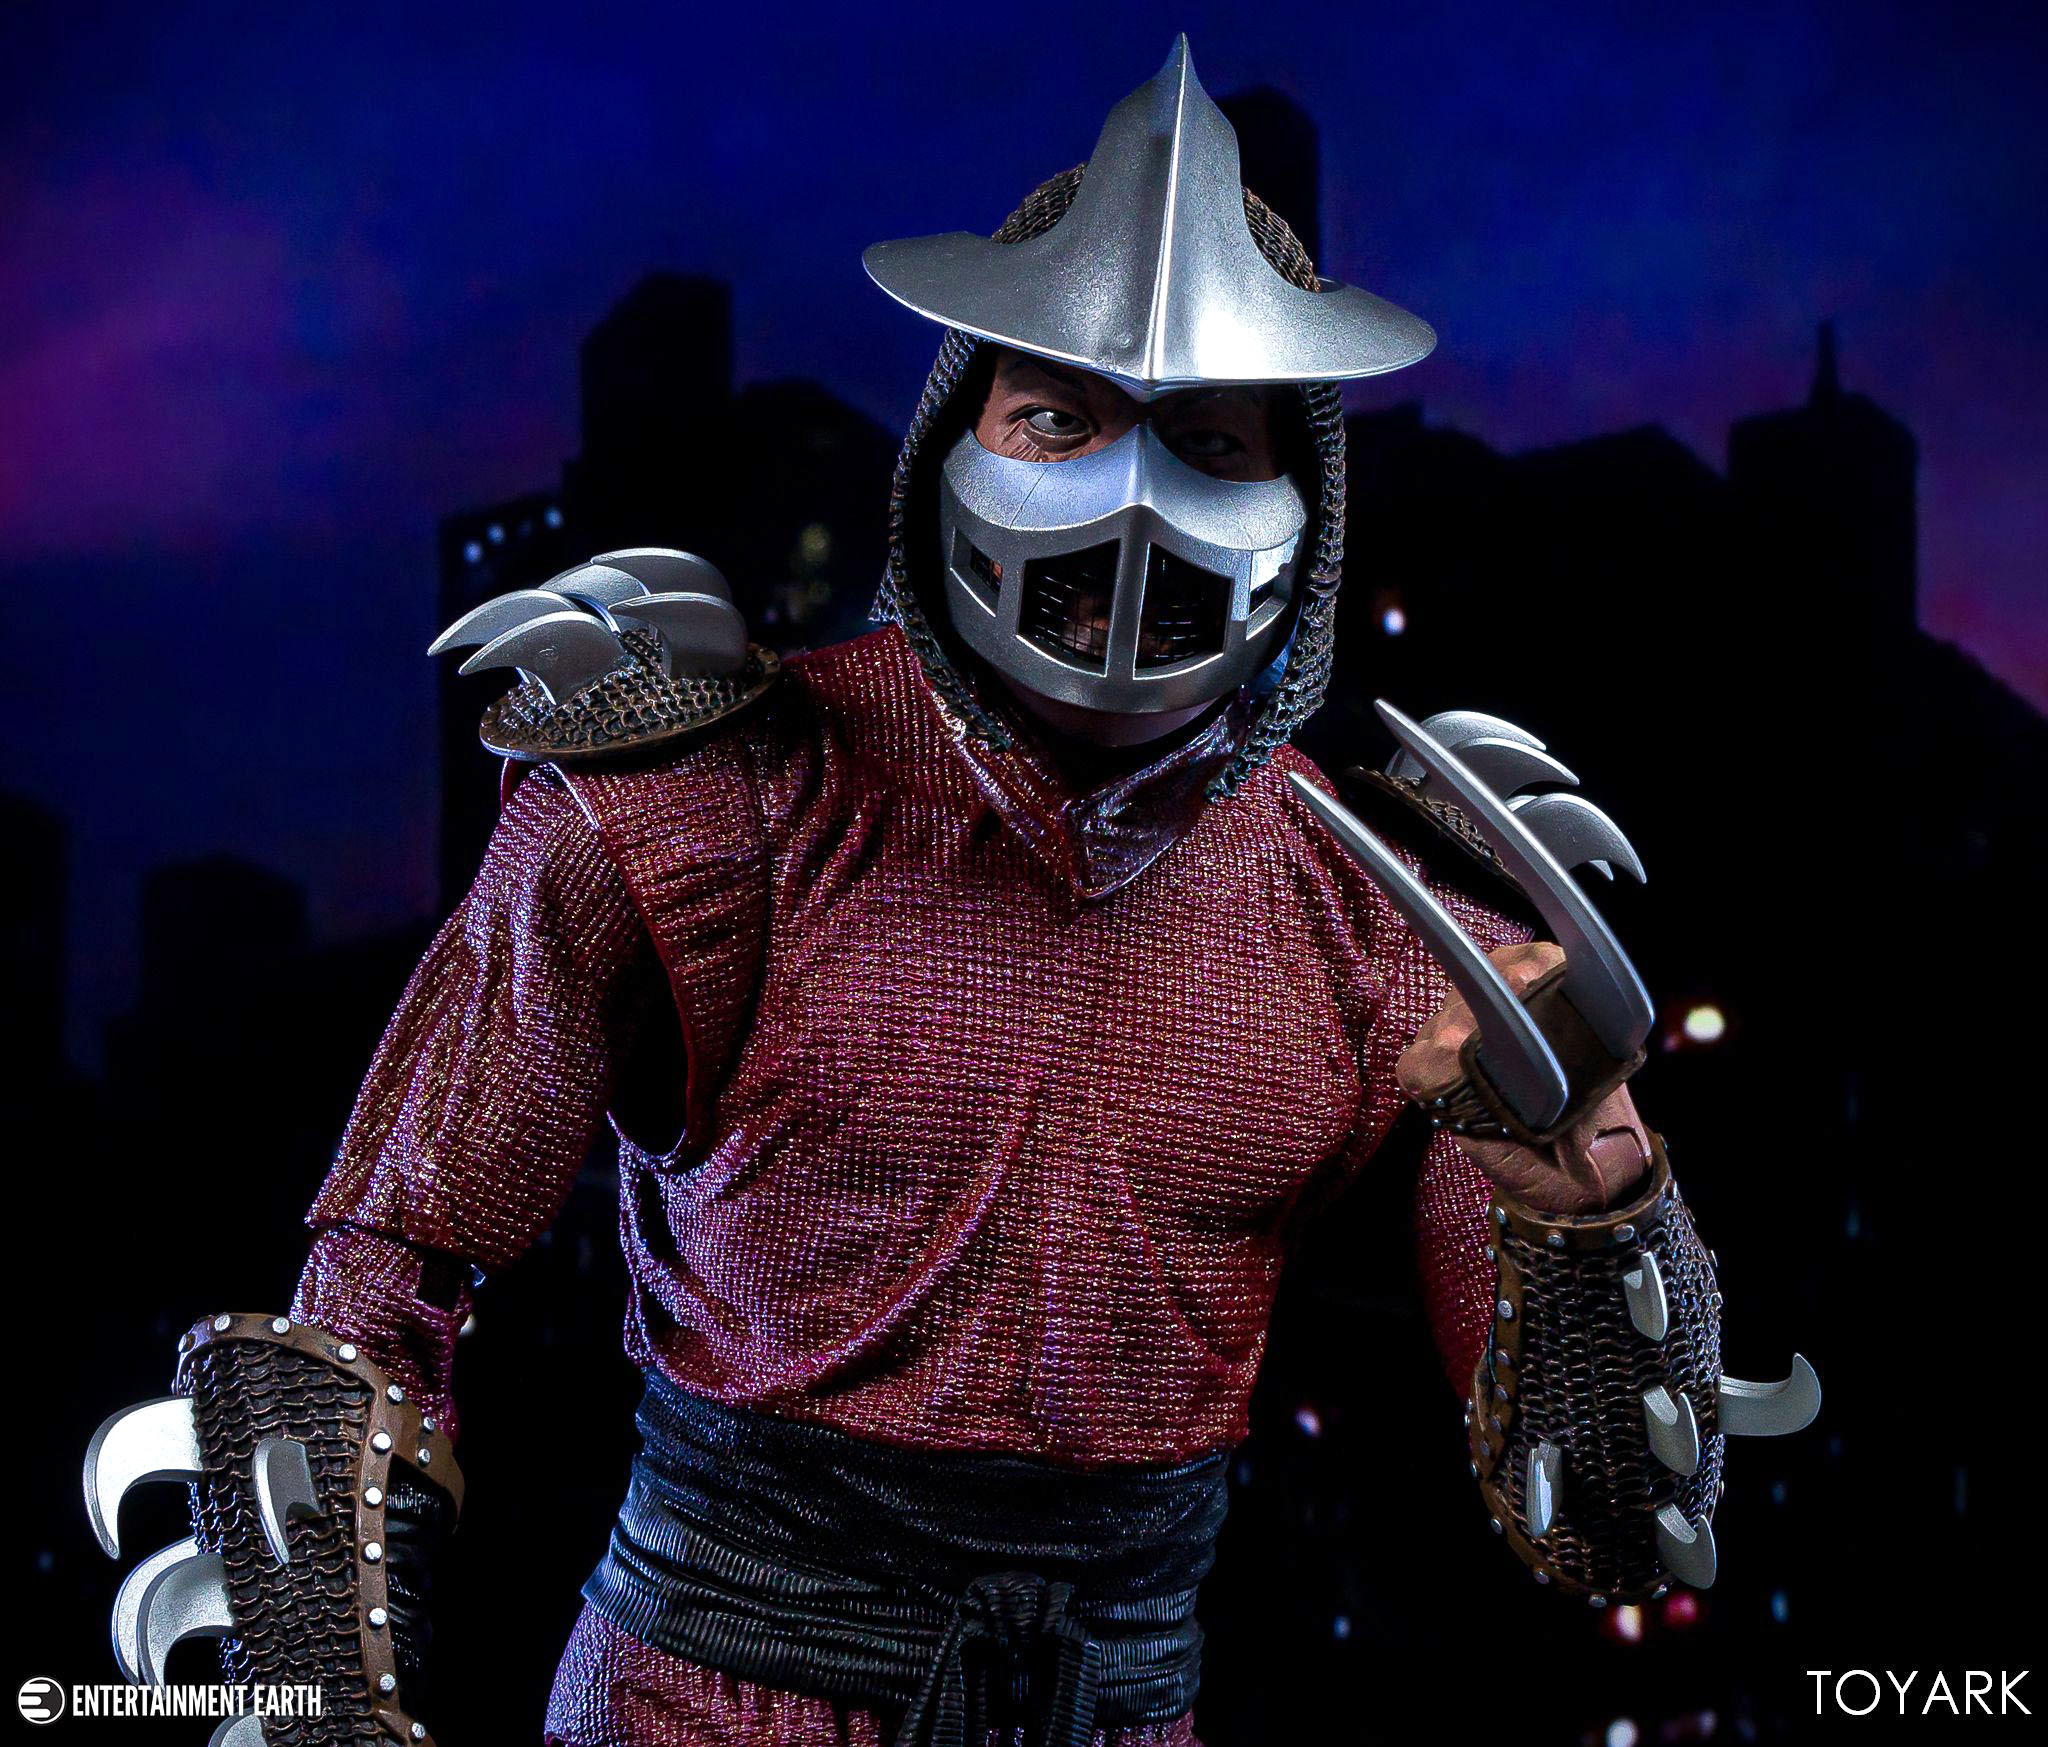 https://news.toyark.com/wp-content/uploads/sites/4/2019/06/NECA-1990-TMNT-Shredder-032.jpg